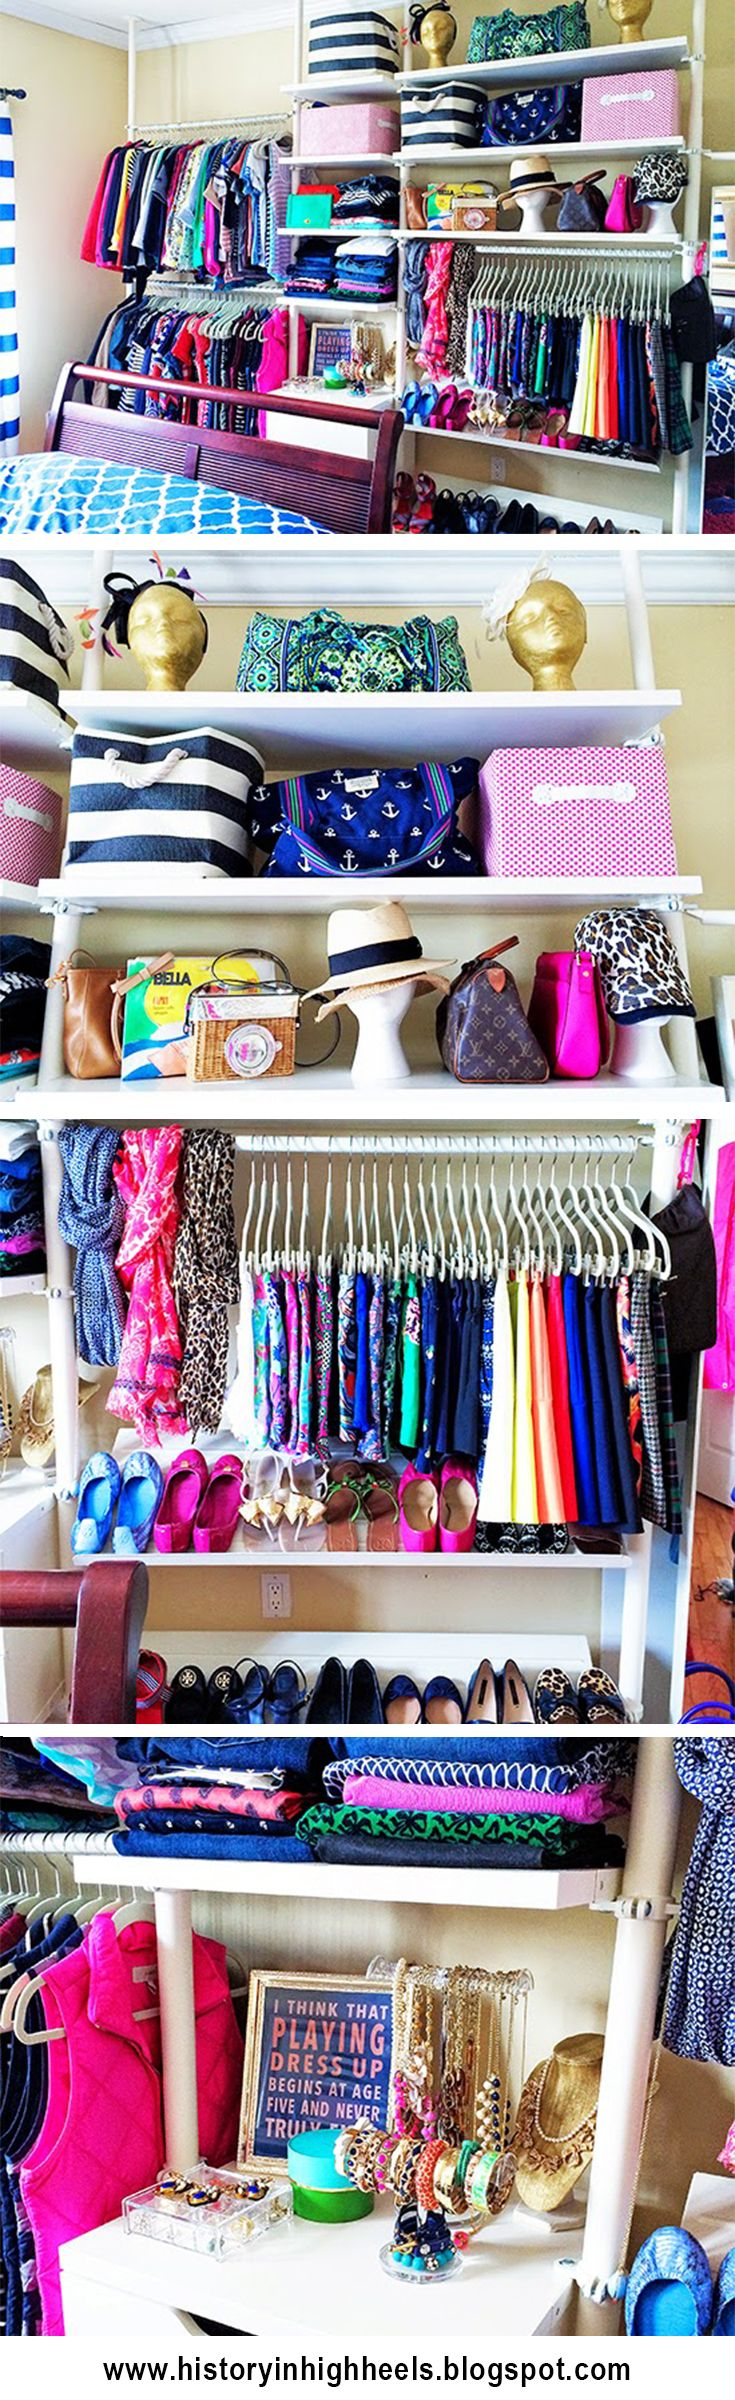 Turn a small room into a closet affordable how to build a closet into the corner of a room with - Affordable diy home makeovers that you should consider ...